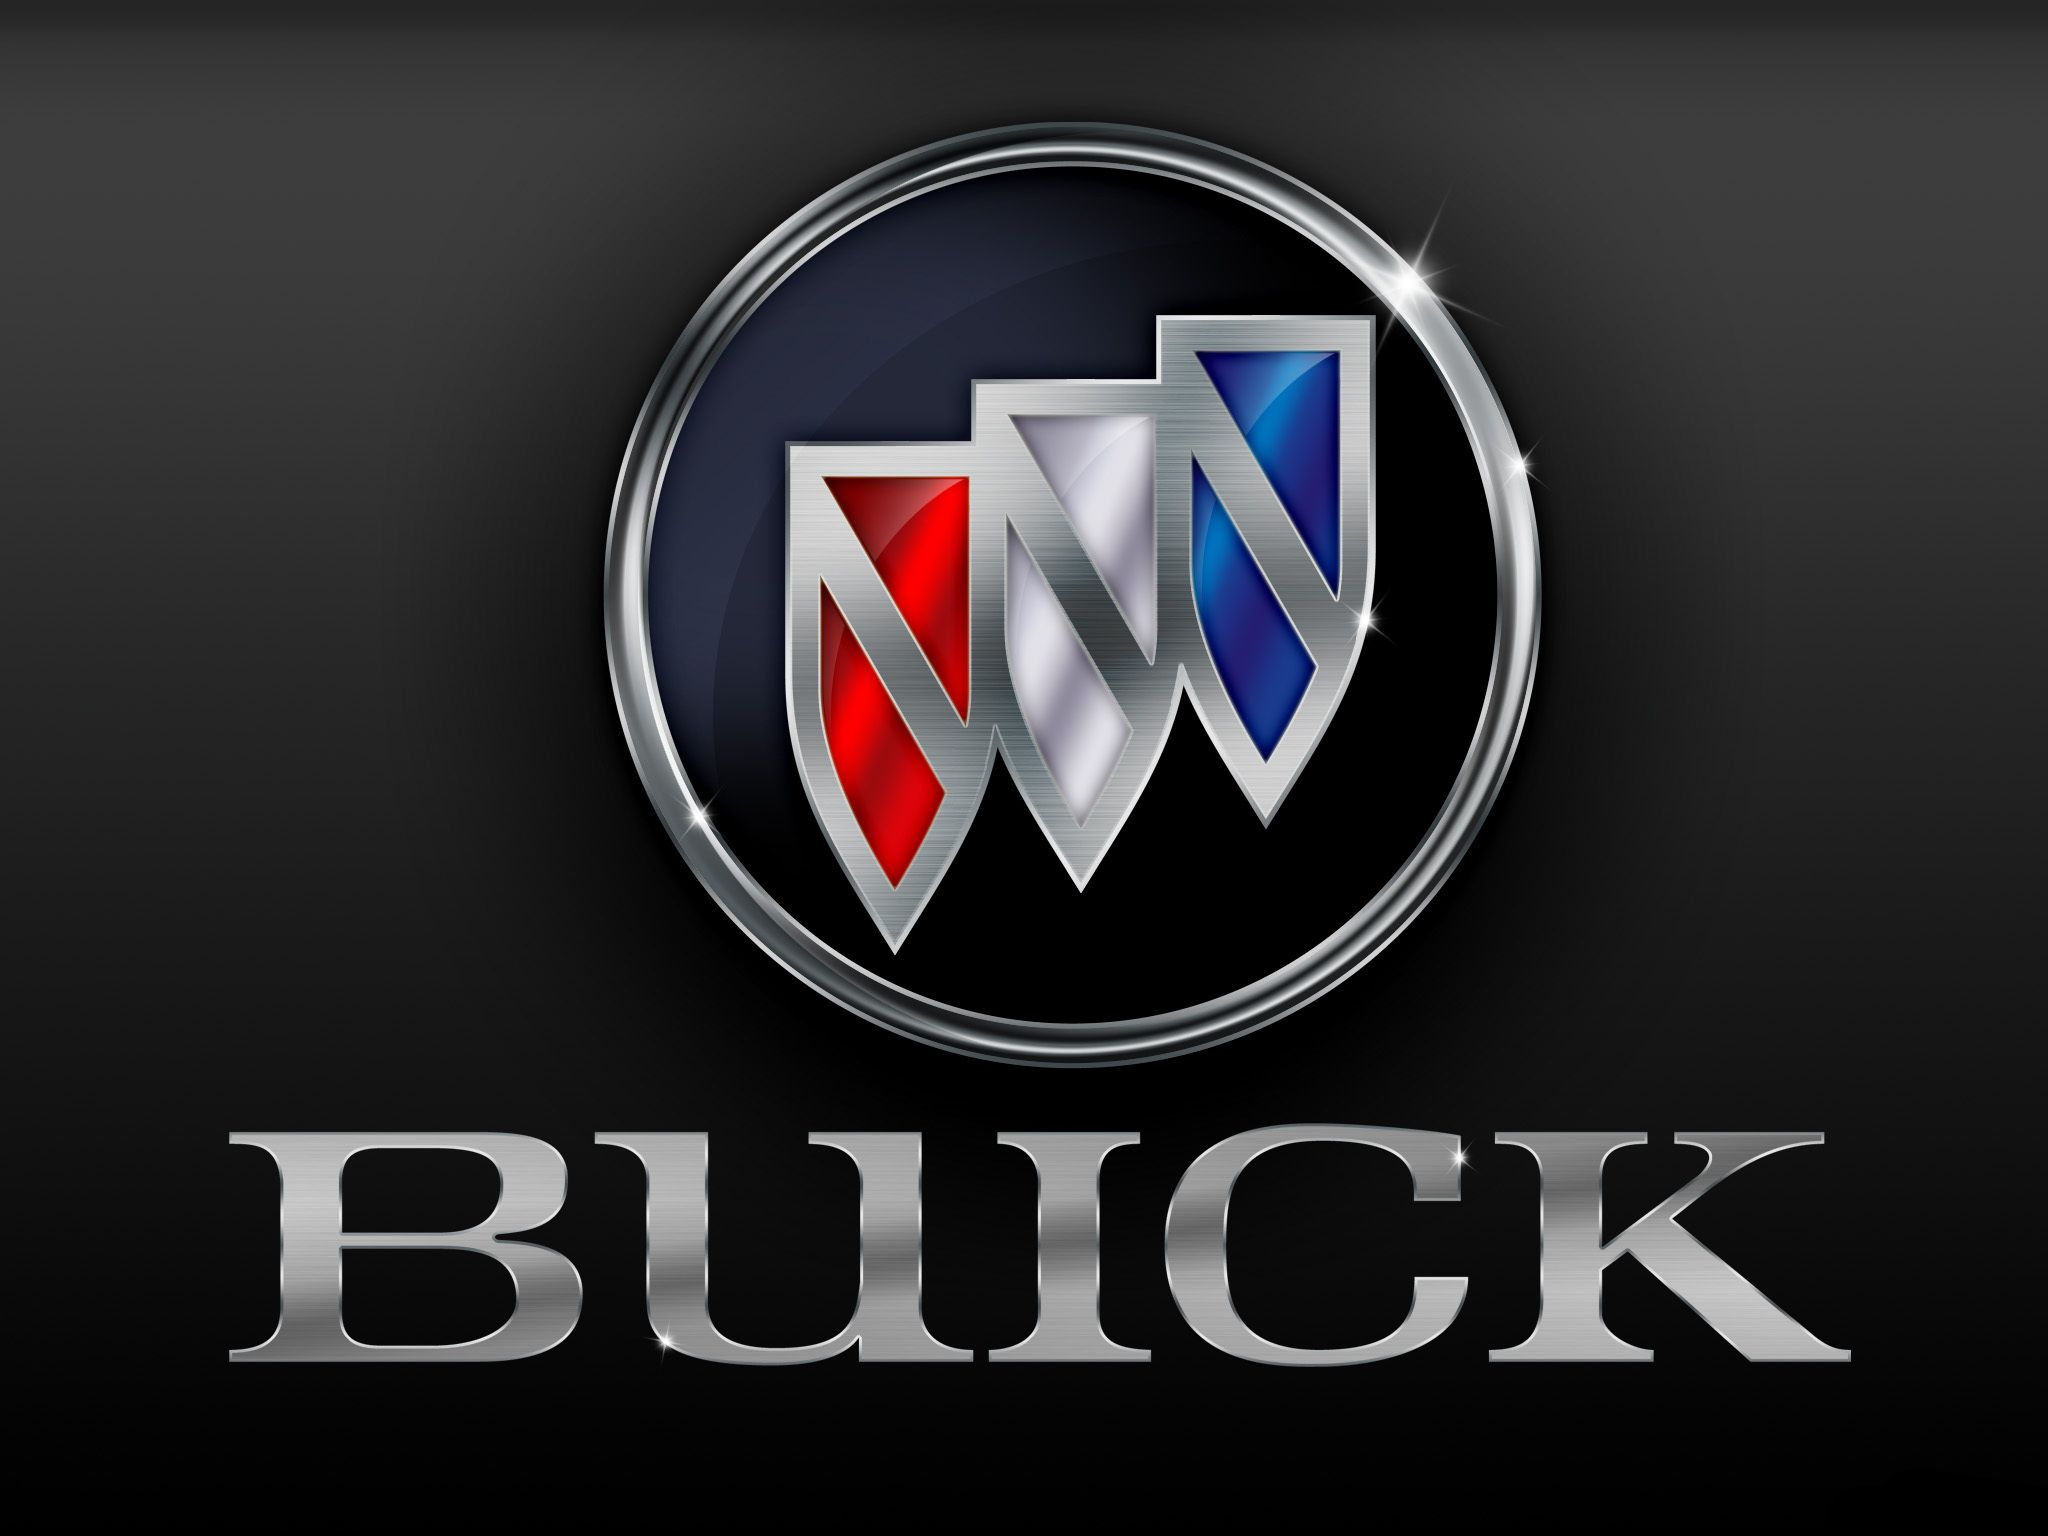 Buick Logo, Buick Car Symbol Meaning and History | Car ...